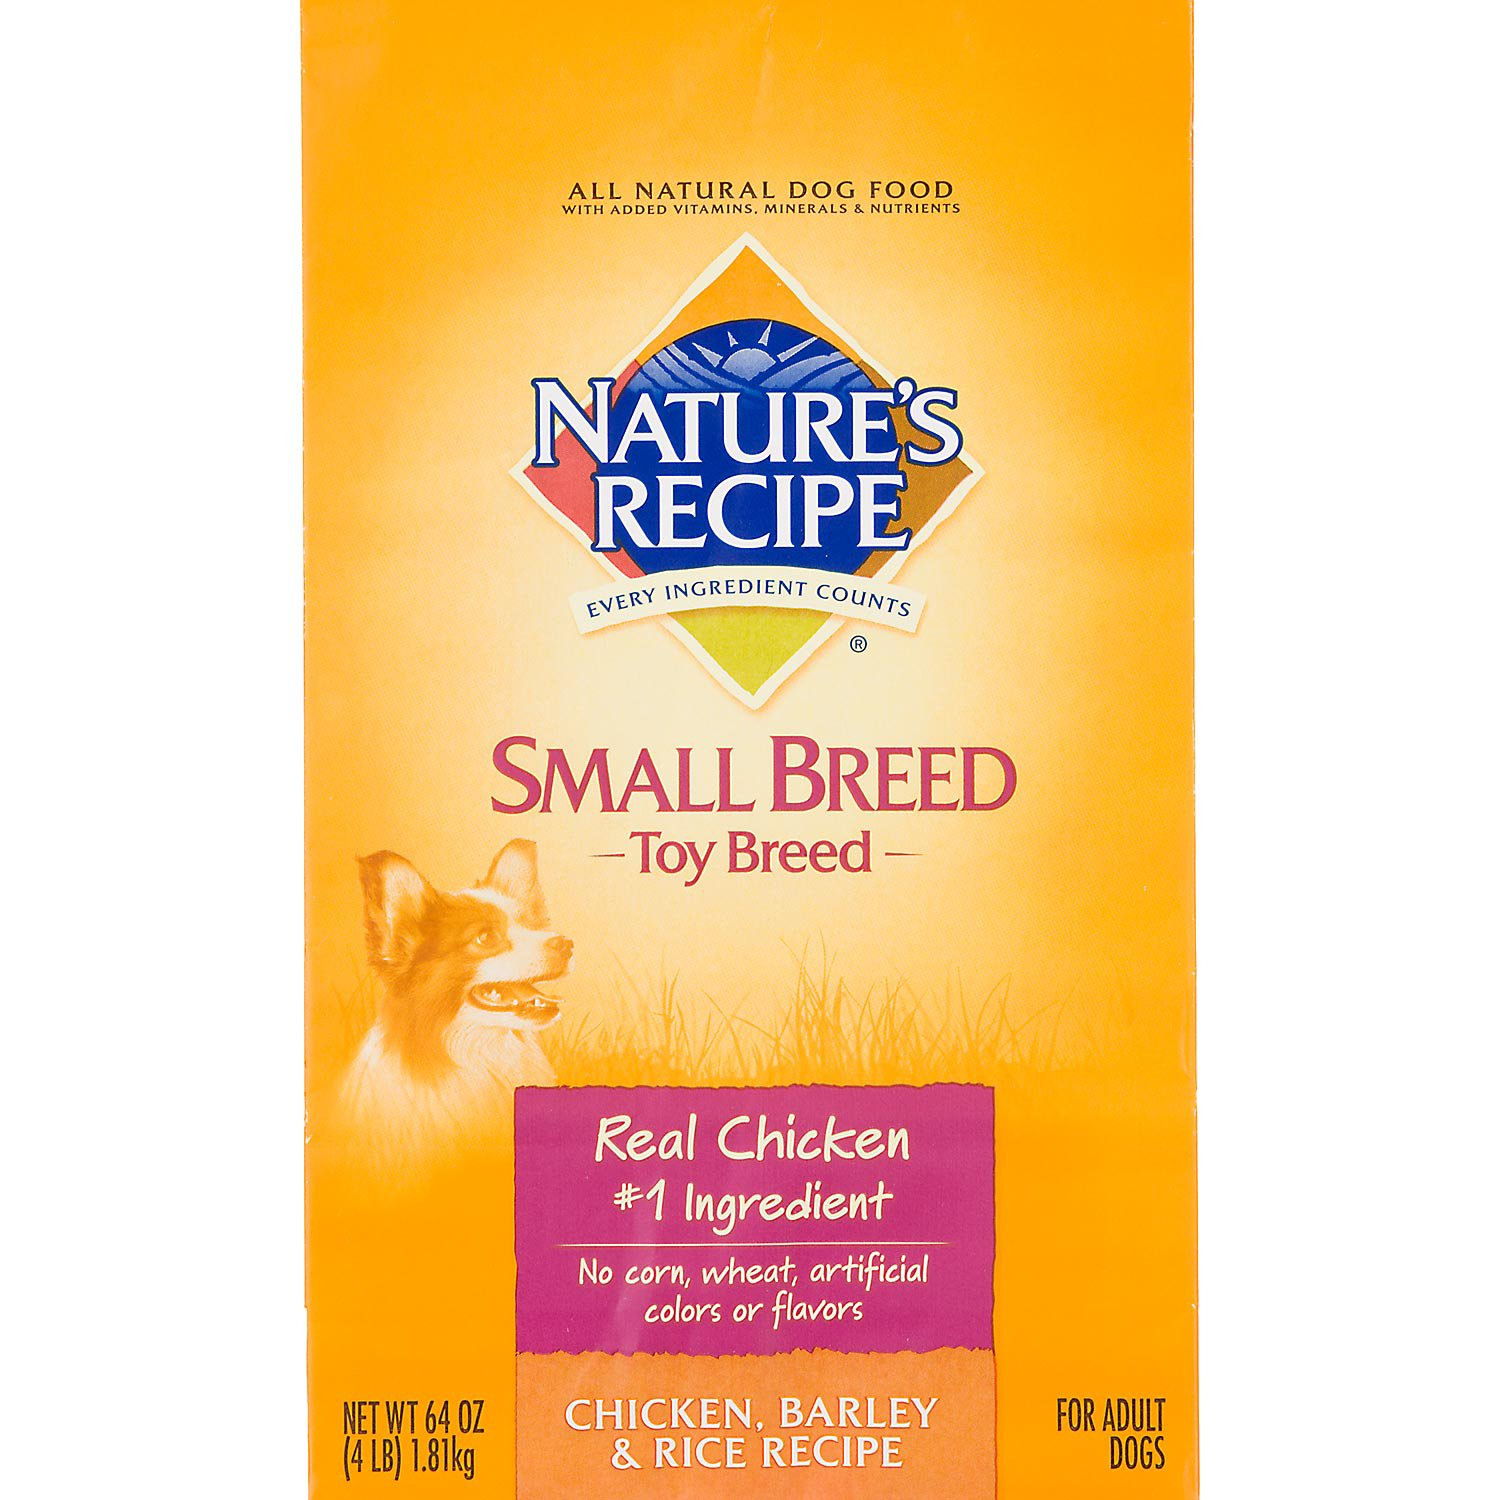 Nature's Recipe Dog Food for Toy Dogs